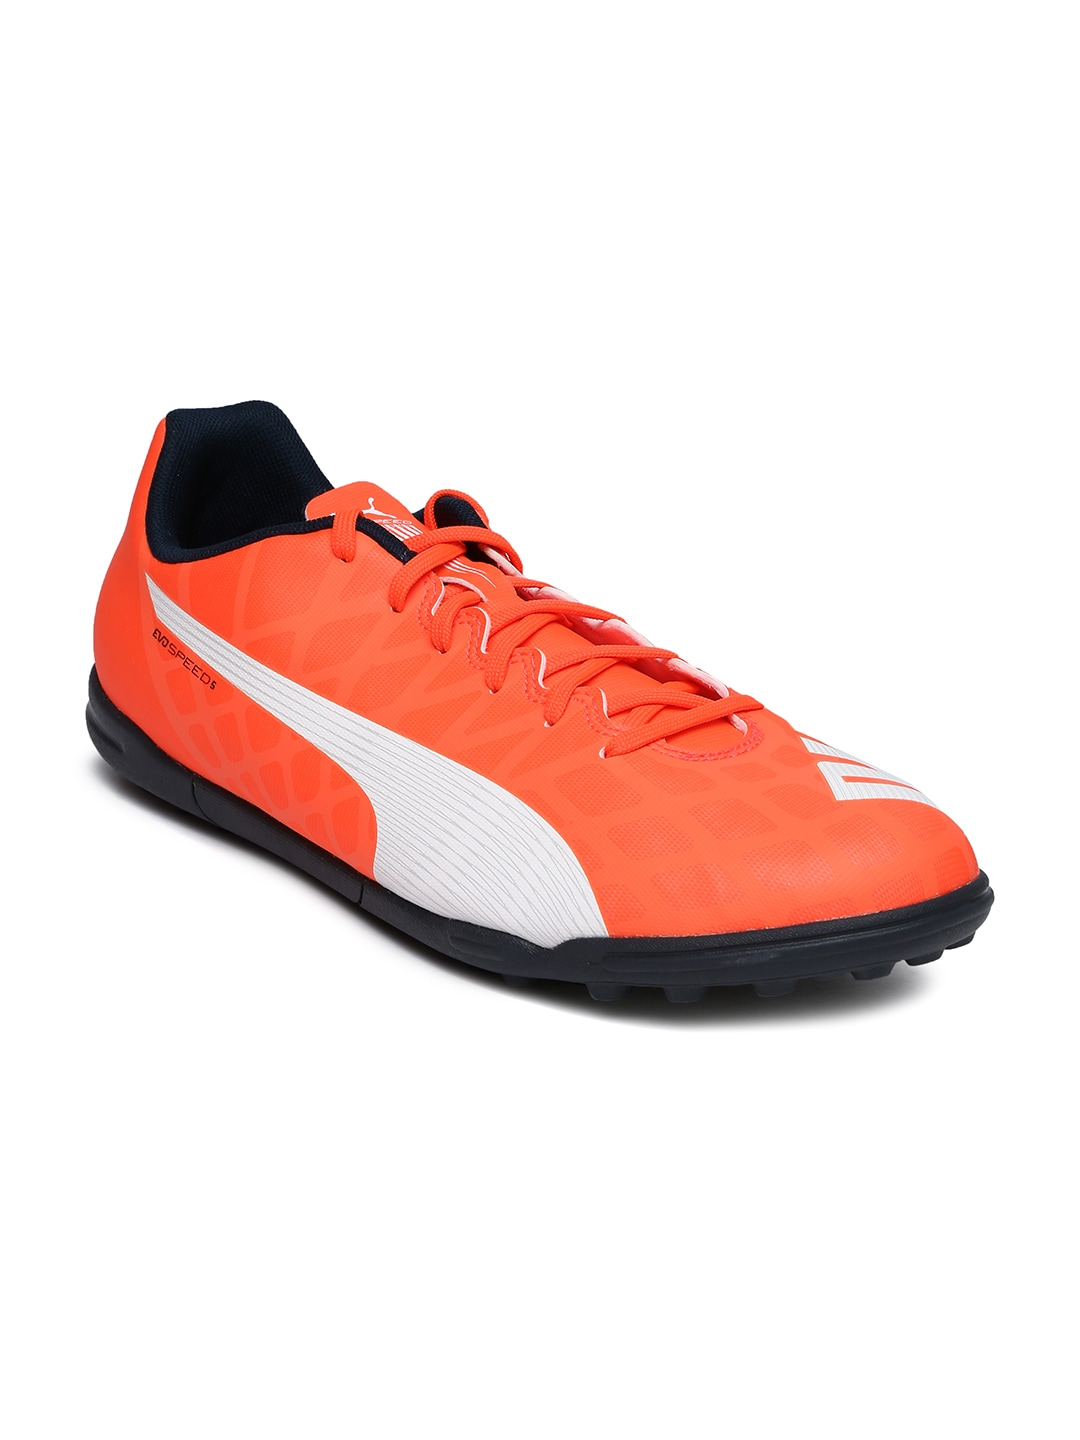 Football Chaussures  Buy Football Studs Online for Homme & Femme  in India